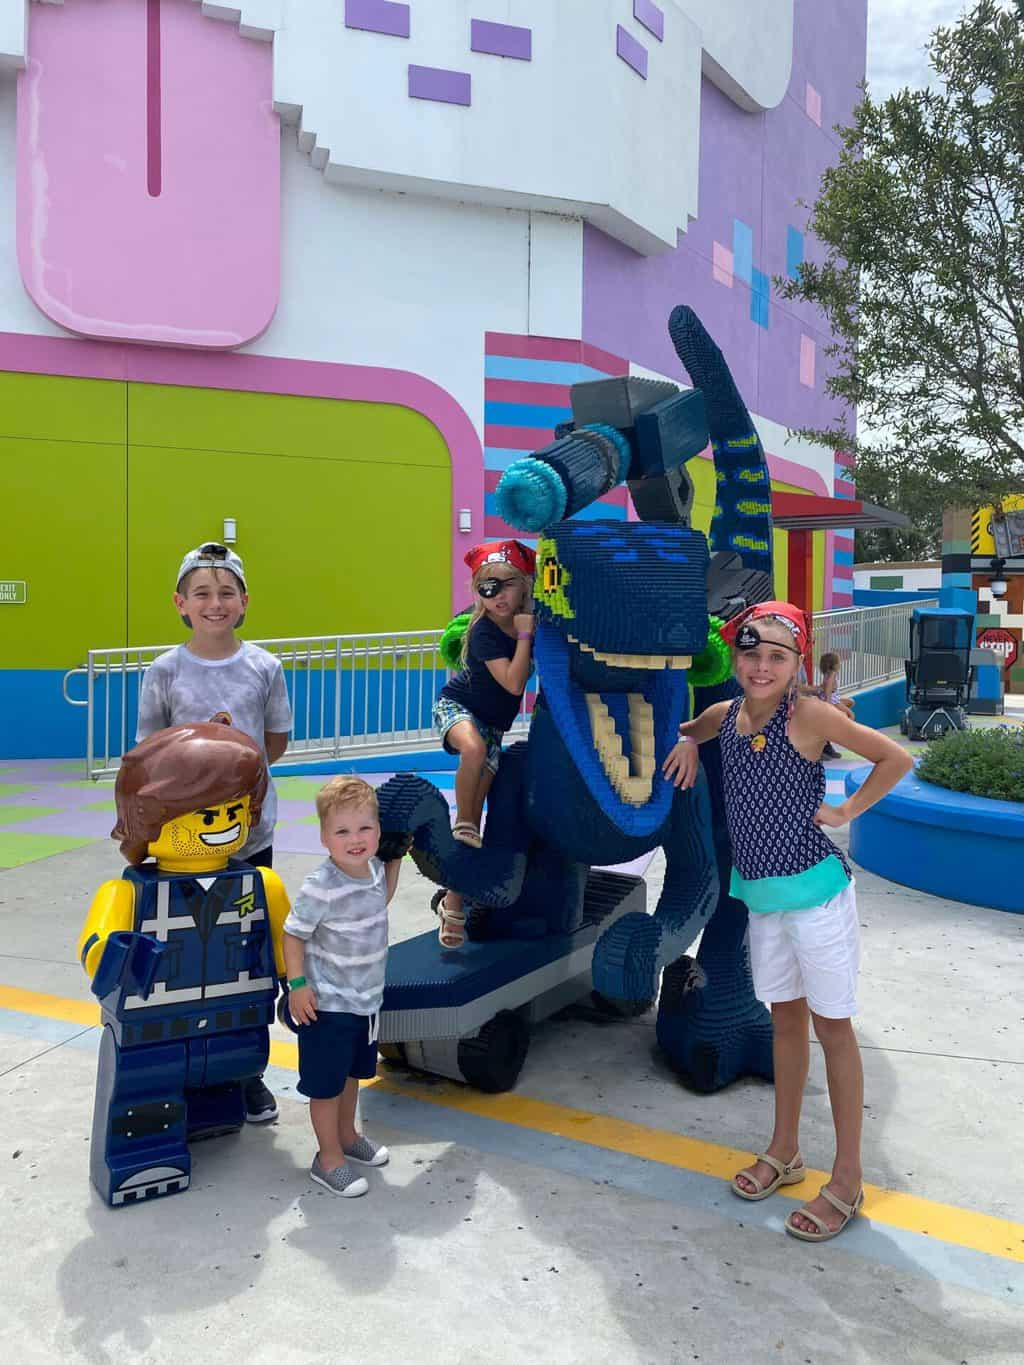 Tips for Visiting LEGOLAND Florida – LEGOLAND Travel Guide